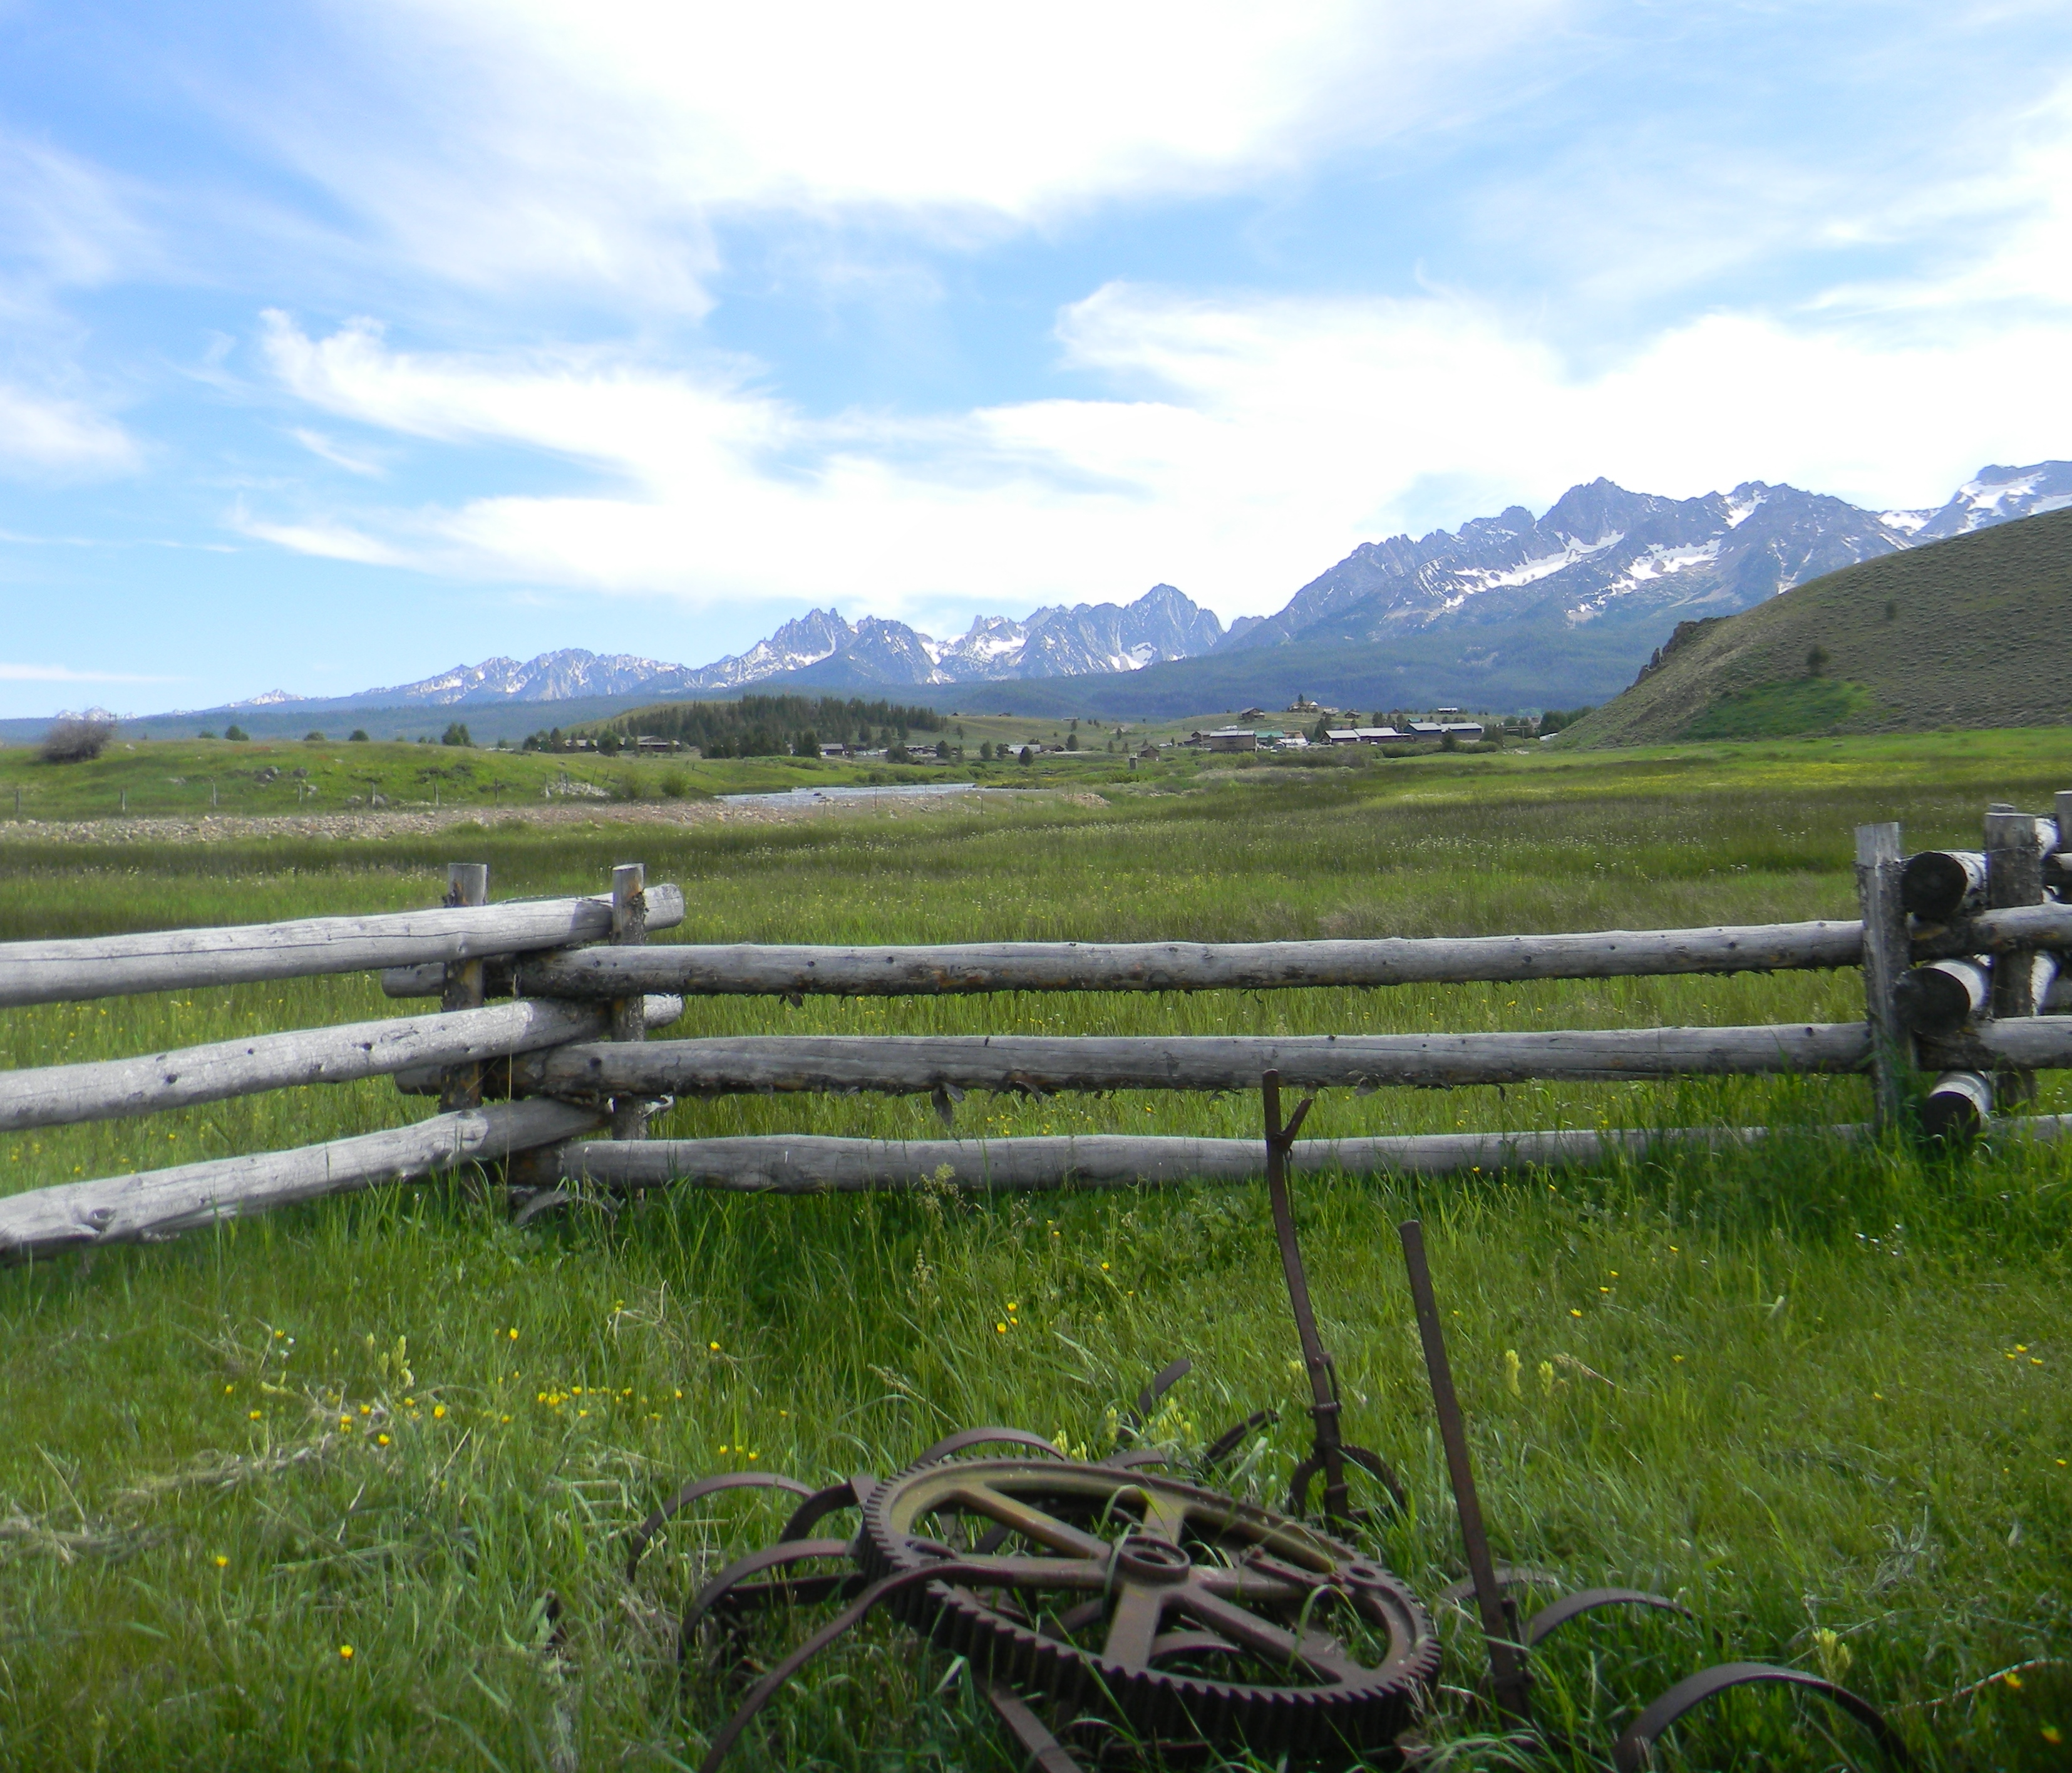 Reconciling the Colonial History of the Western United States through Environmental Literatures: The Application of Postcolonial and Ecocritical Theories to the Literature of the American West